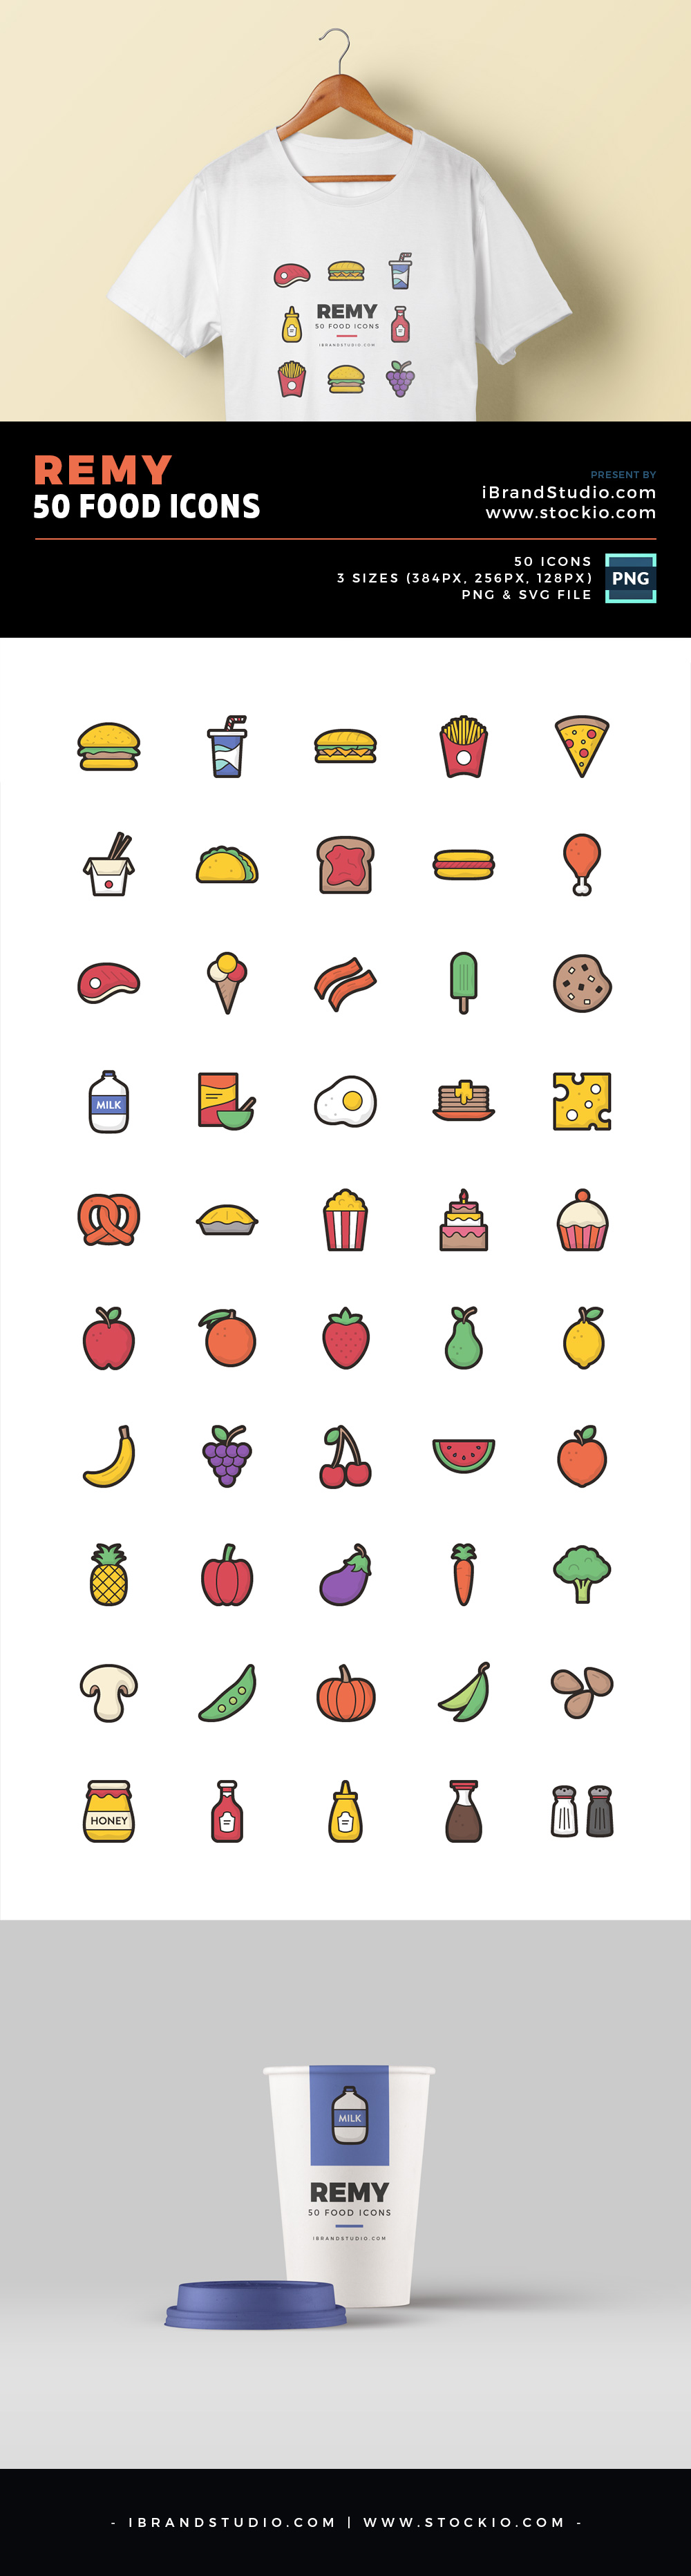 Remy - Free Food Icons